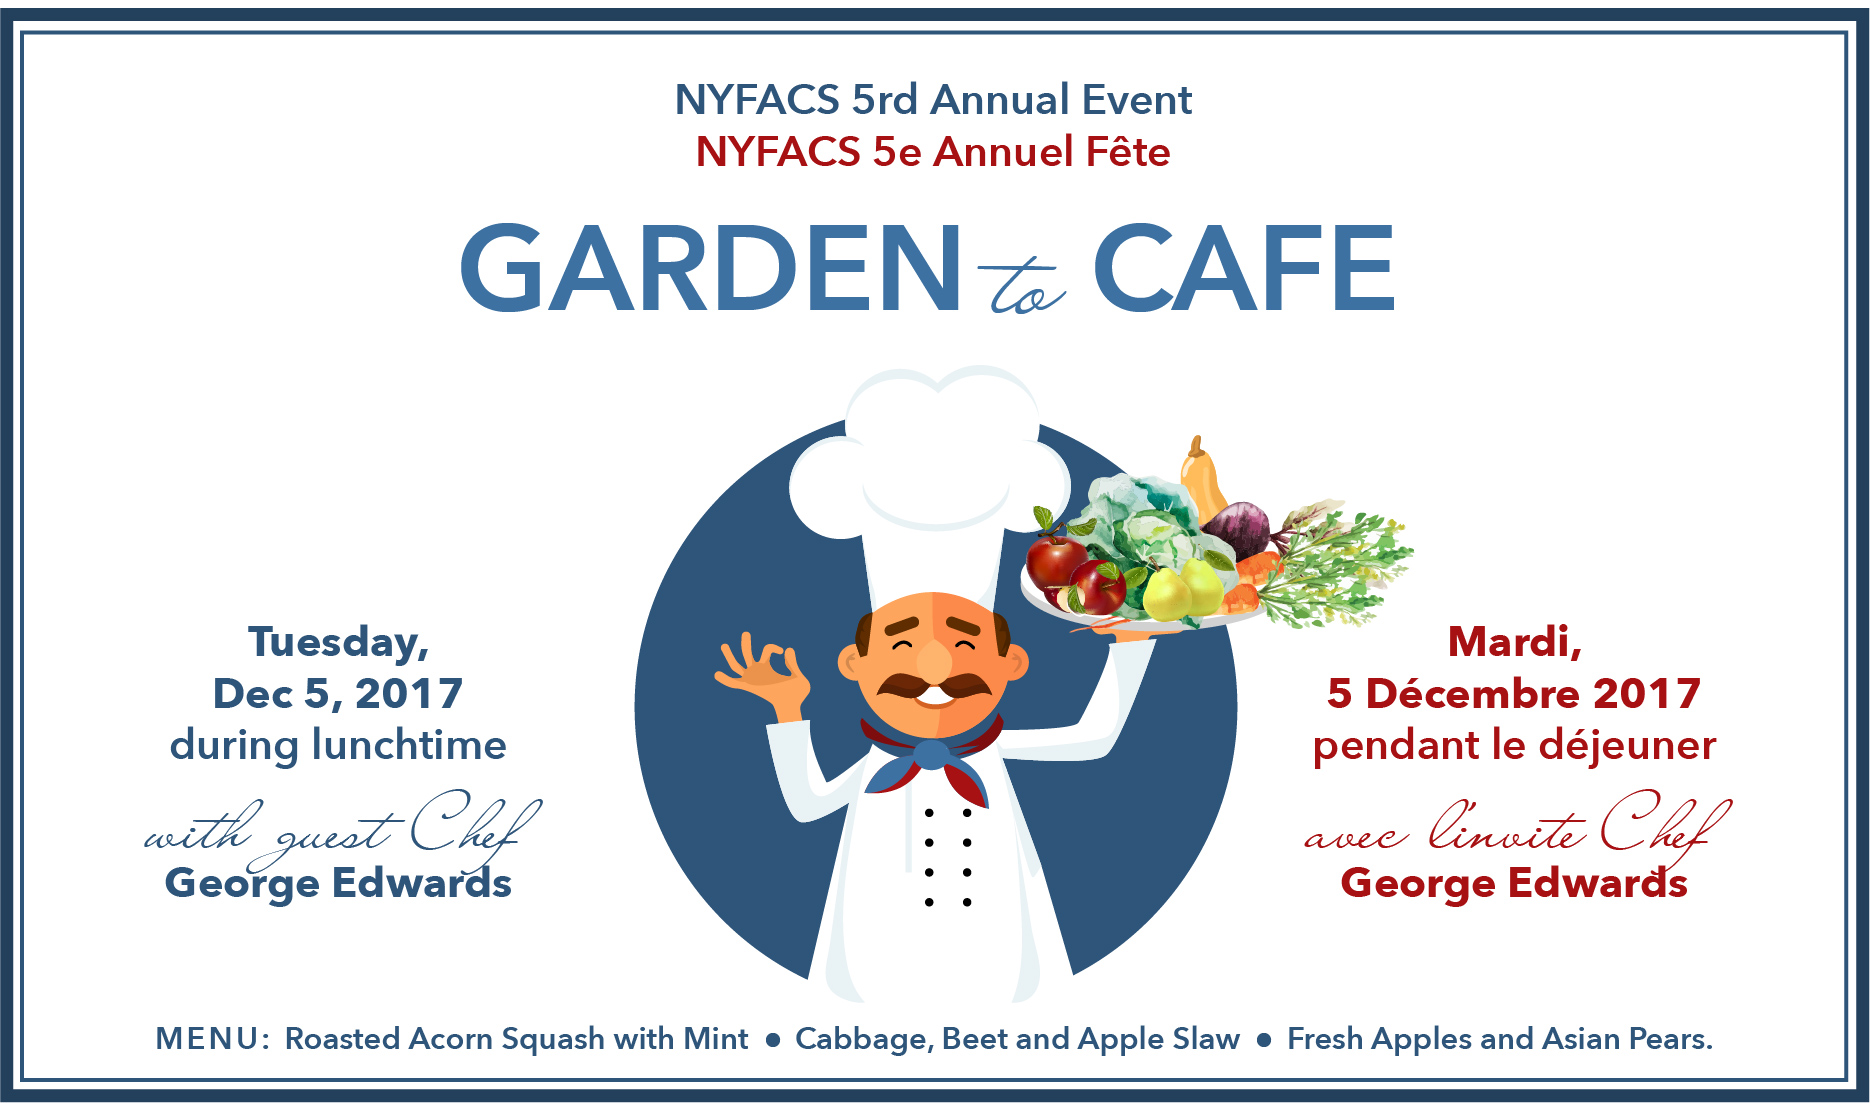 Parents volunteers needed for this event from 11:45am to 1:30pm. We would appreciate your help to assist lunch staff and guest chef George Edwards, so that the children can enjoy and appreciate this generously sponsored event to begin our school gardening year!    Please email d lynch@nyfacs.net  if you can help.